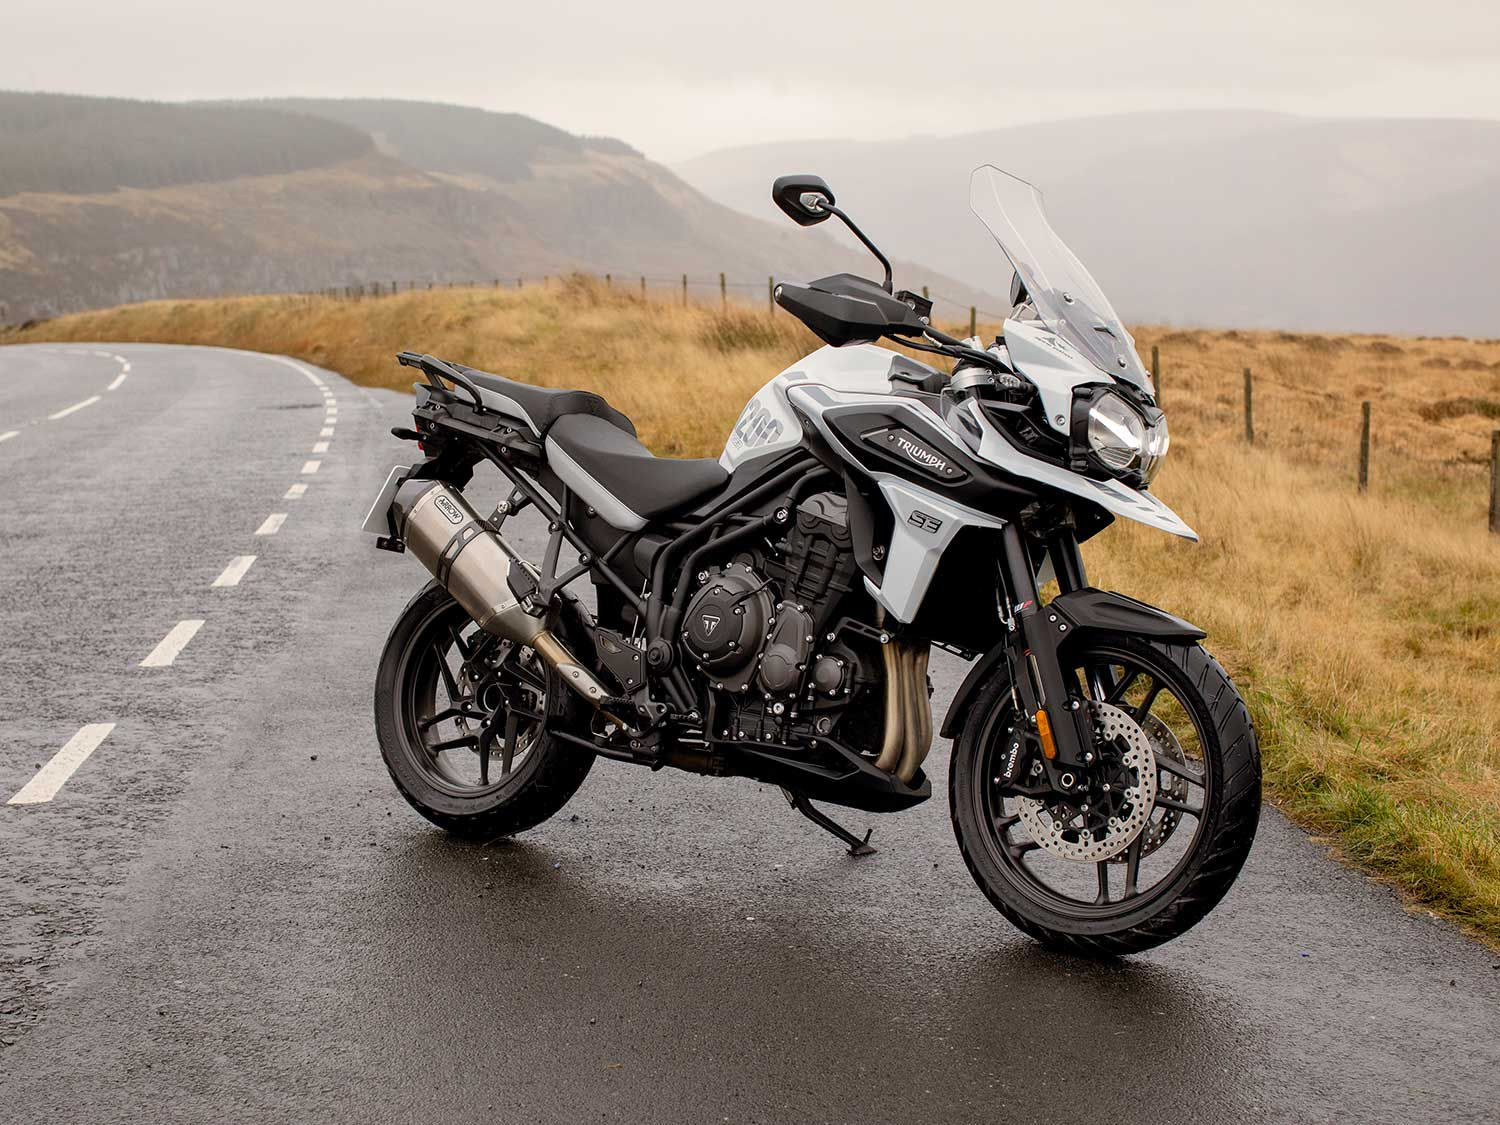 The 2020 Triumph Tiger Alpine Edition differs from the Desert thanks to the Snowdonia White paint job, street-oriented tires, and cast aluminum wheels.